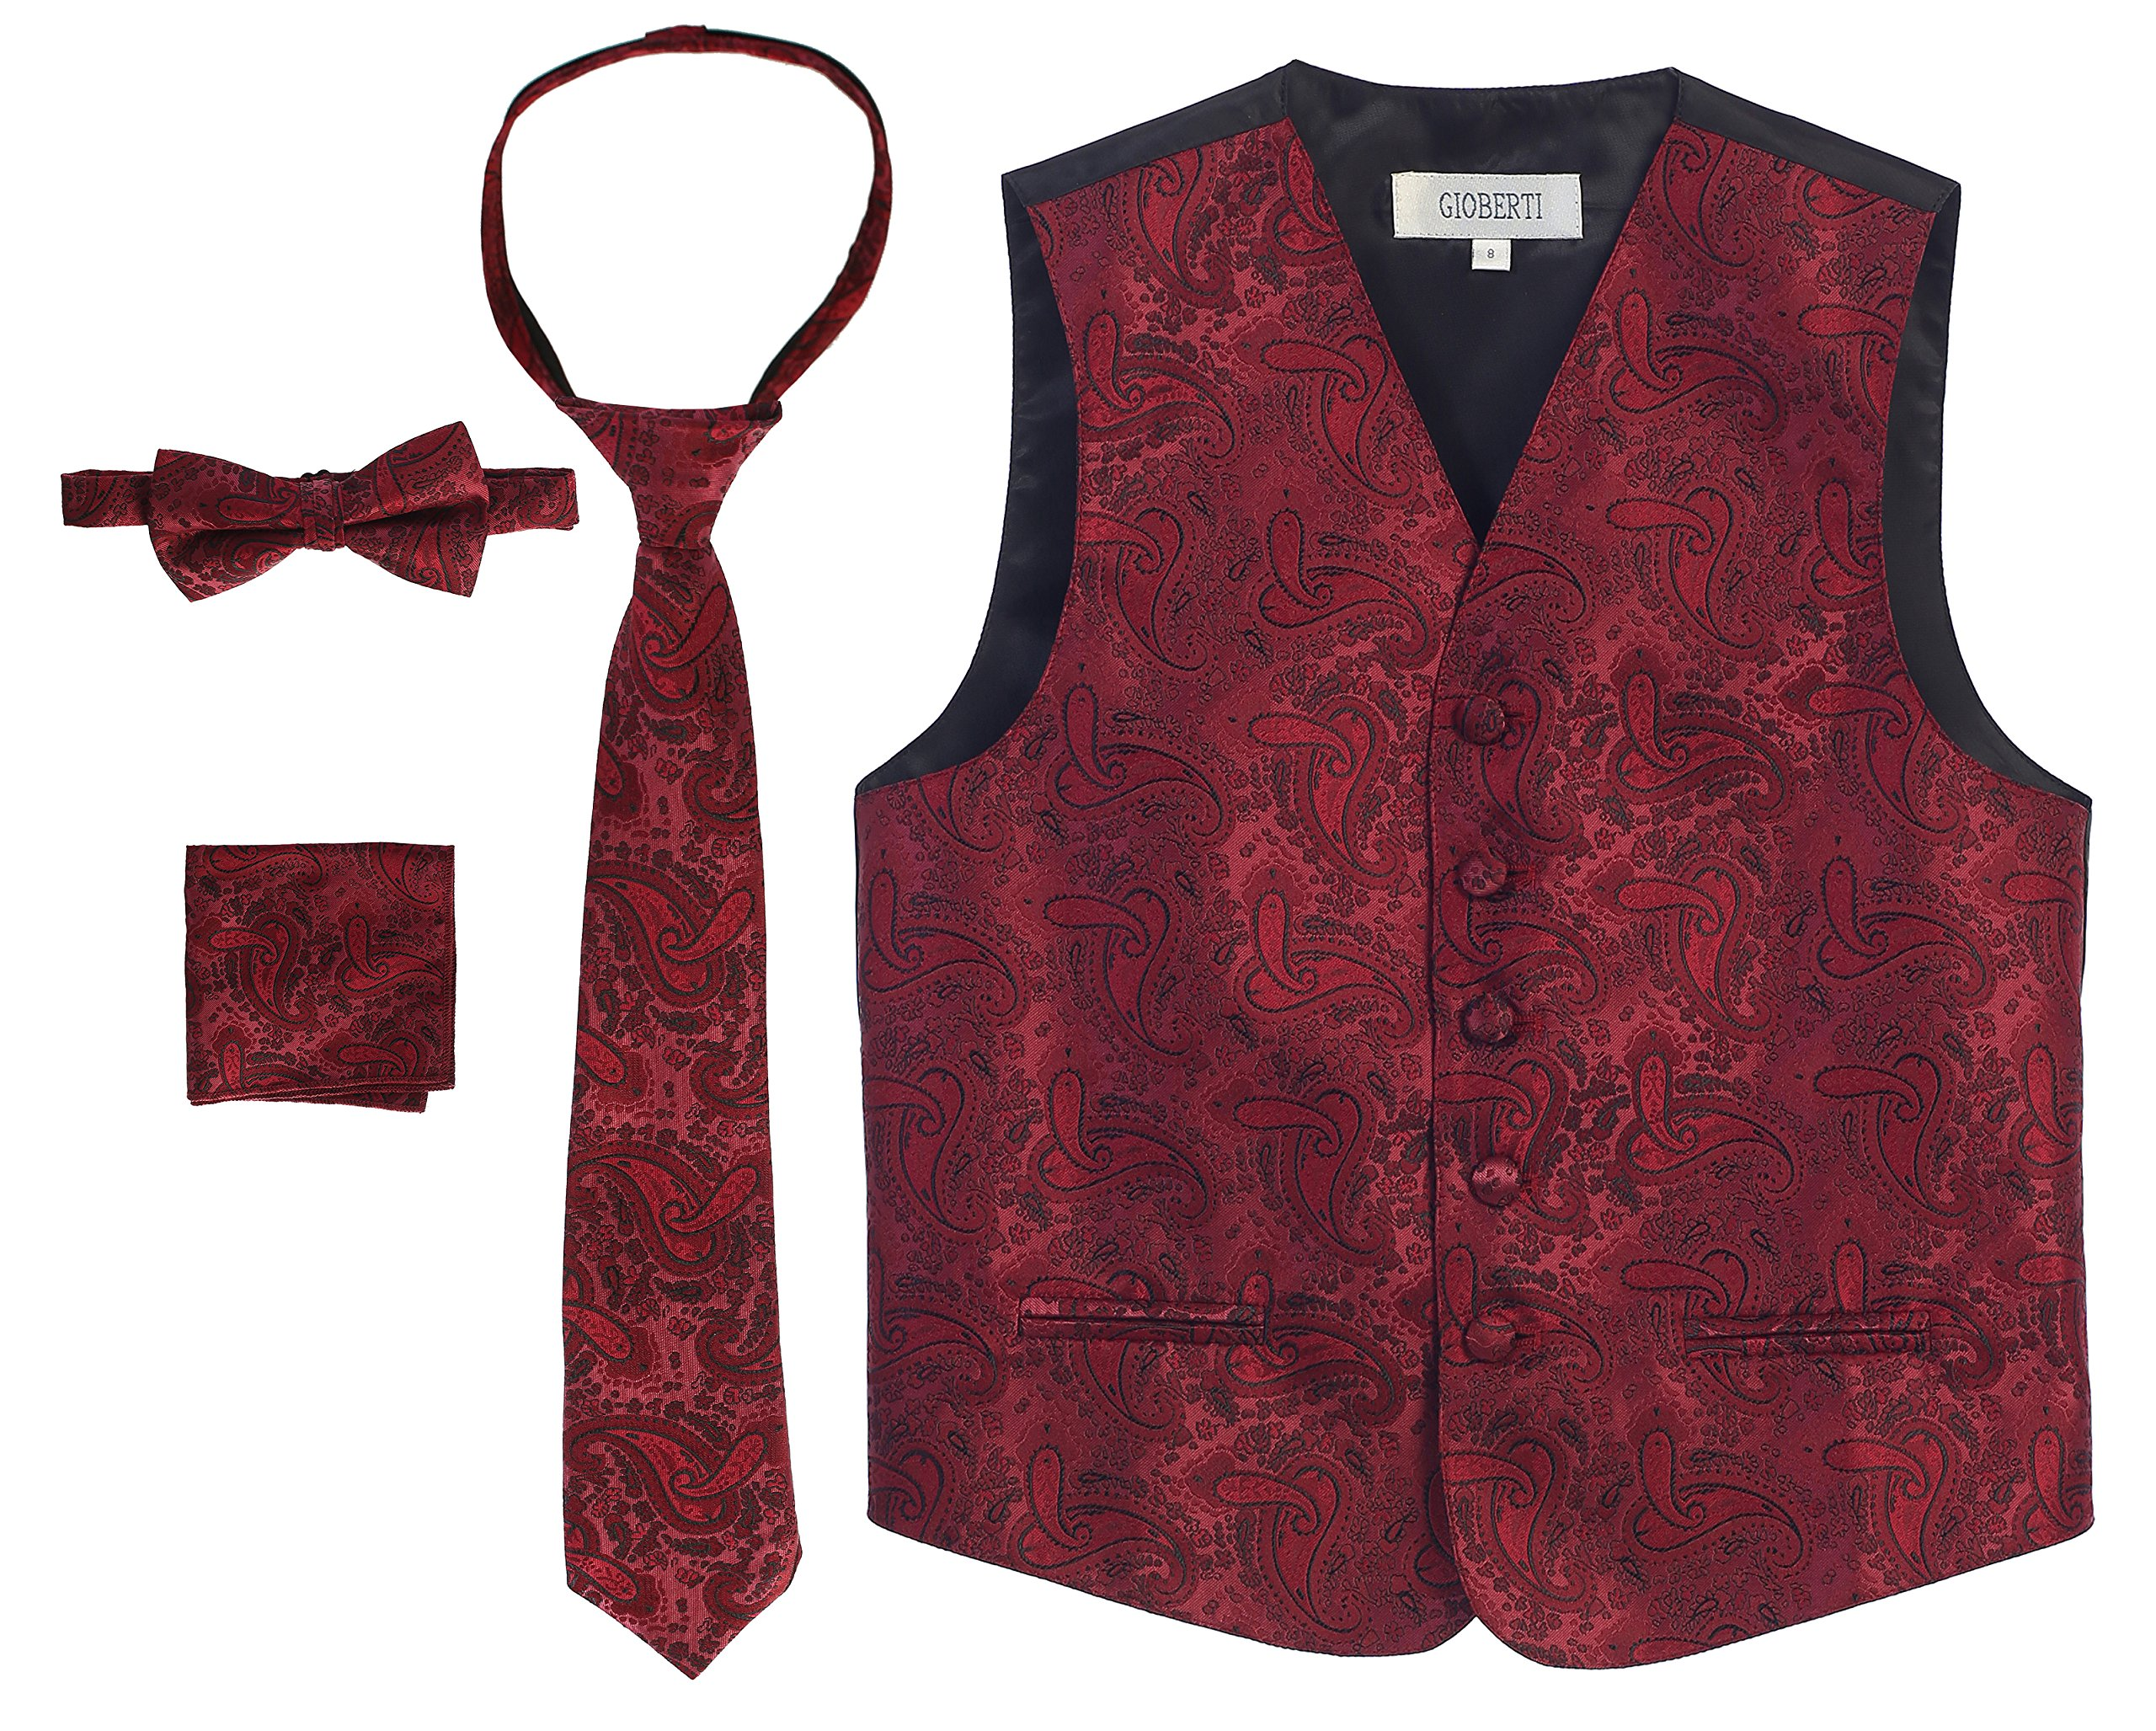 Gioberti Boy's 4 Piece Formal Paisley Vest Set, Burgundy, Size 12